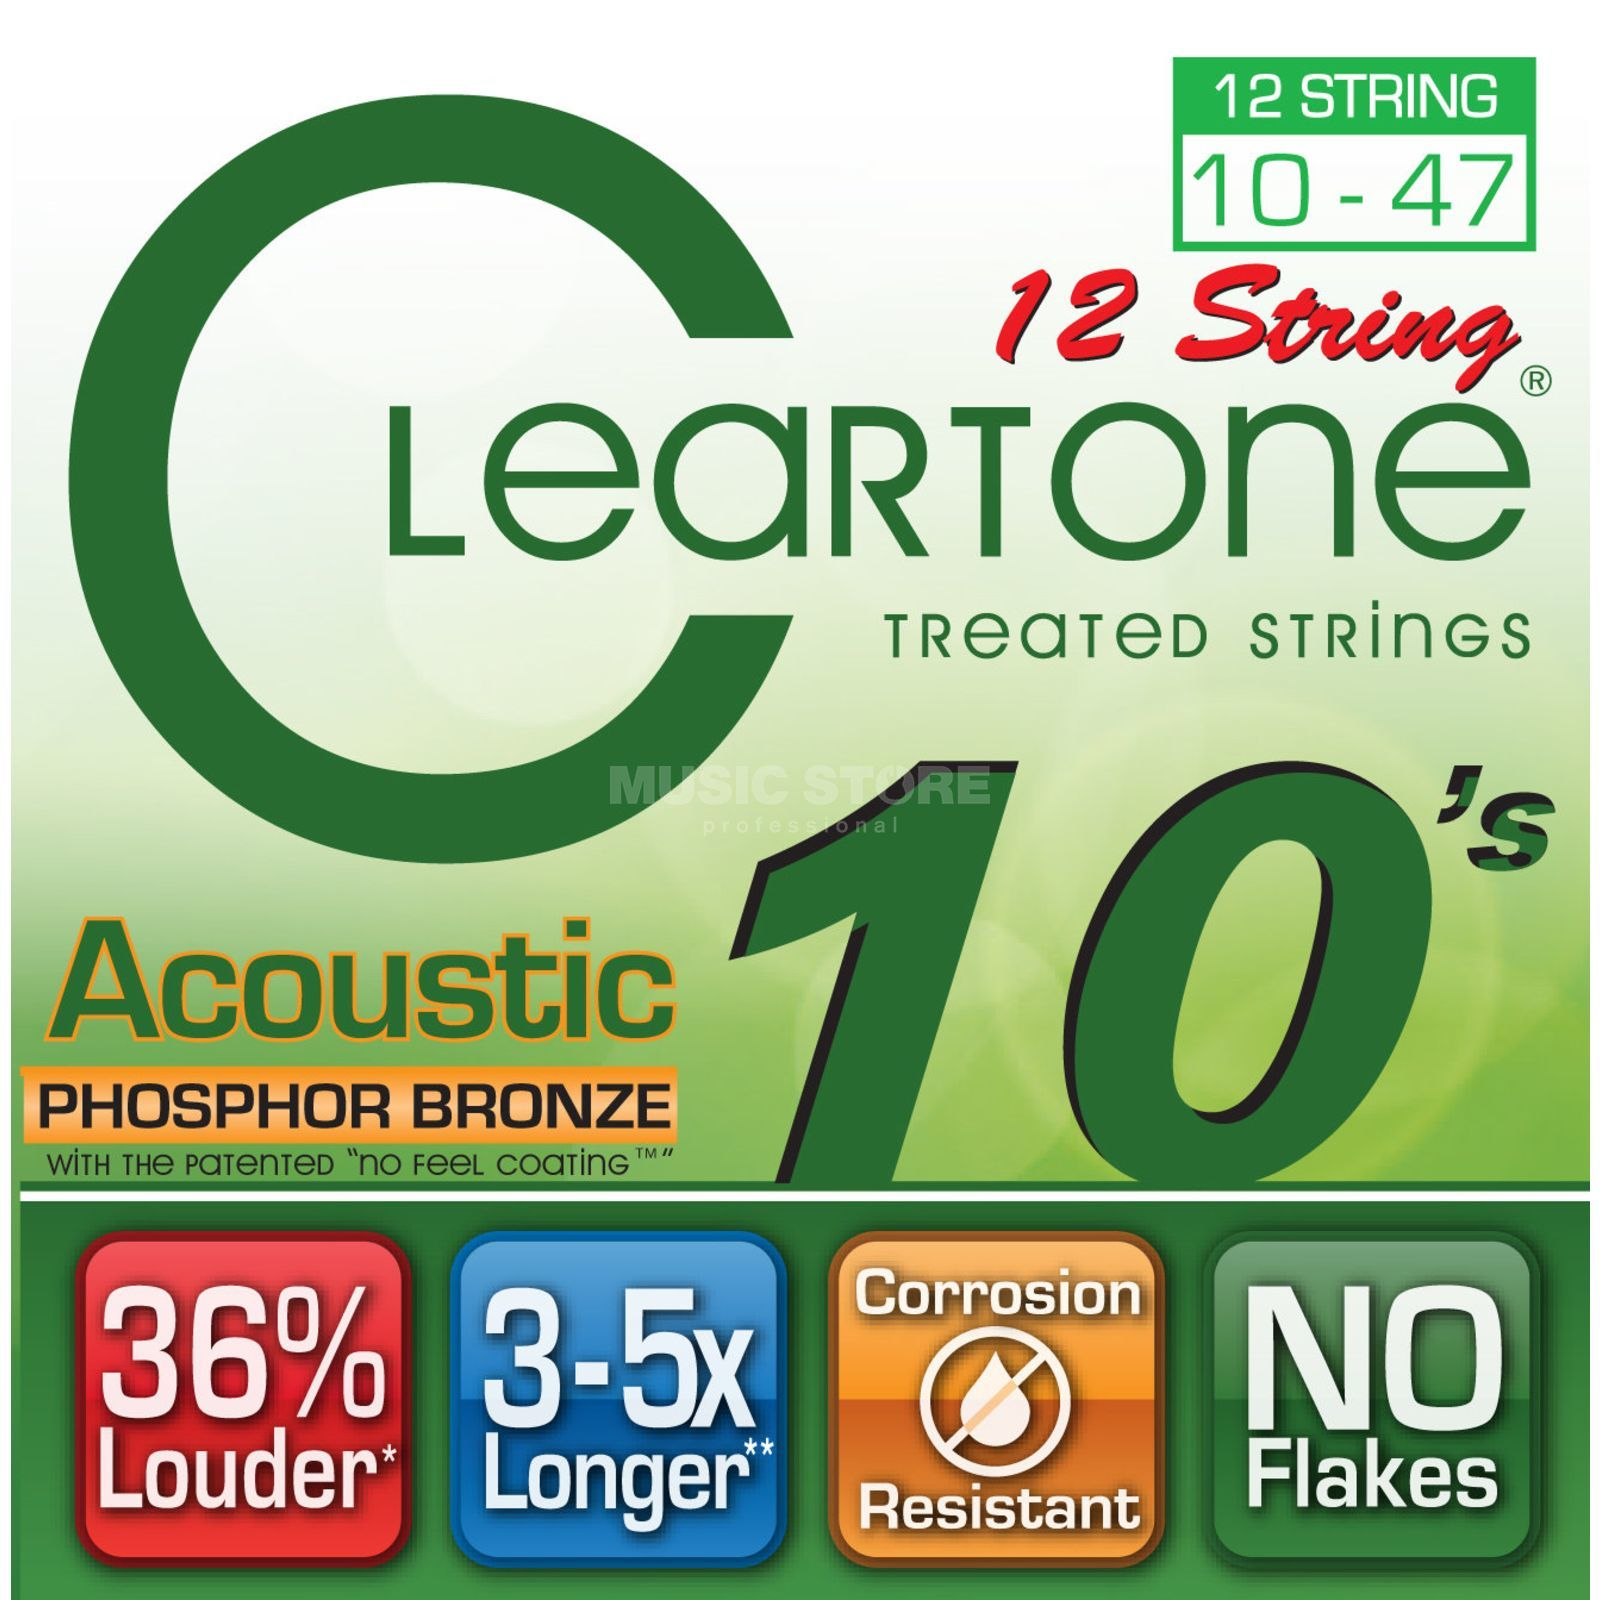 Cleartone A-Guit. Strings 10er 12-String CT7410/12 Light, EMP Strings Produktbillede